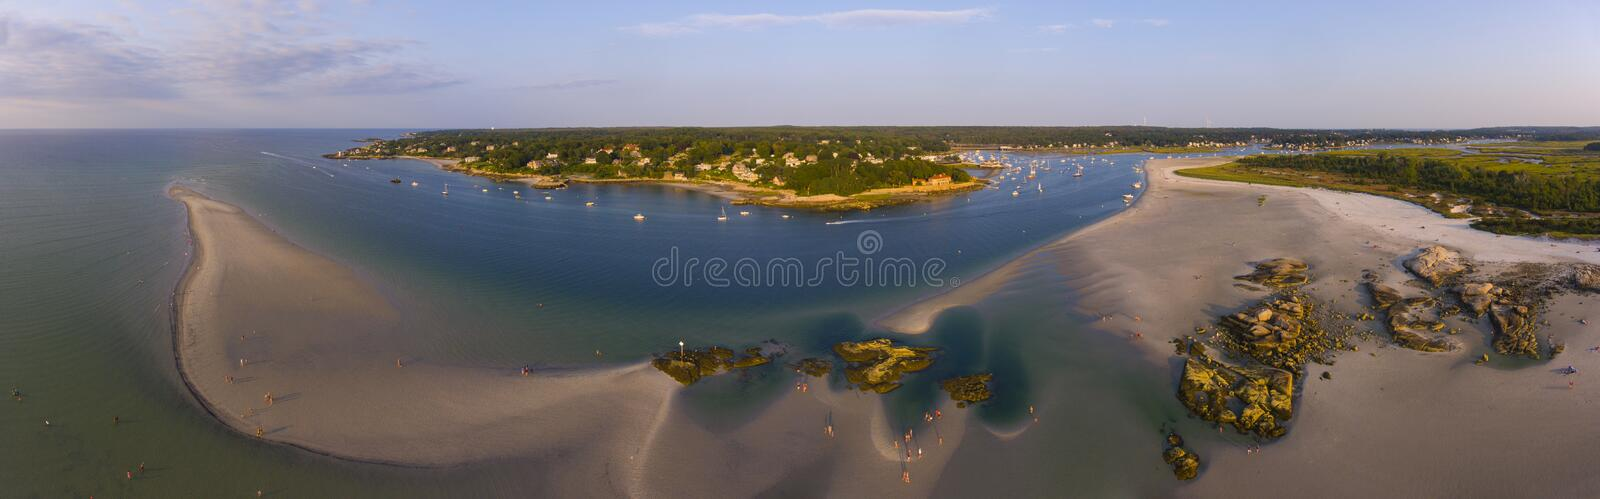 Wingaersheek Beach, Cape Ann, Massachusetts, USA. Wingaersheek Beach aerial view panorama at sunset in Gloucester, Cape Ann, Massachusetts, USA stock images